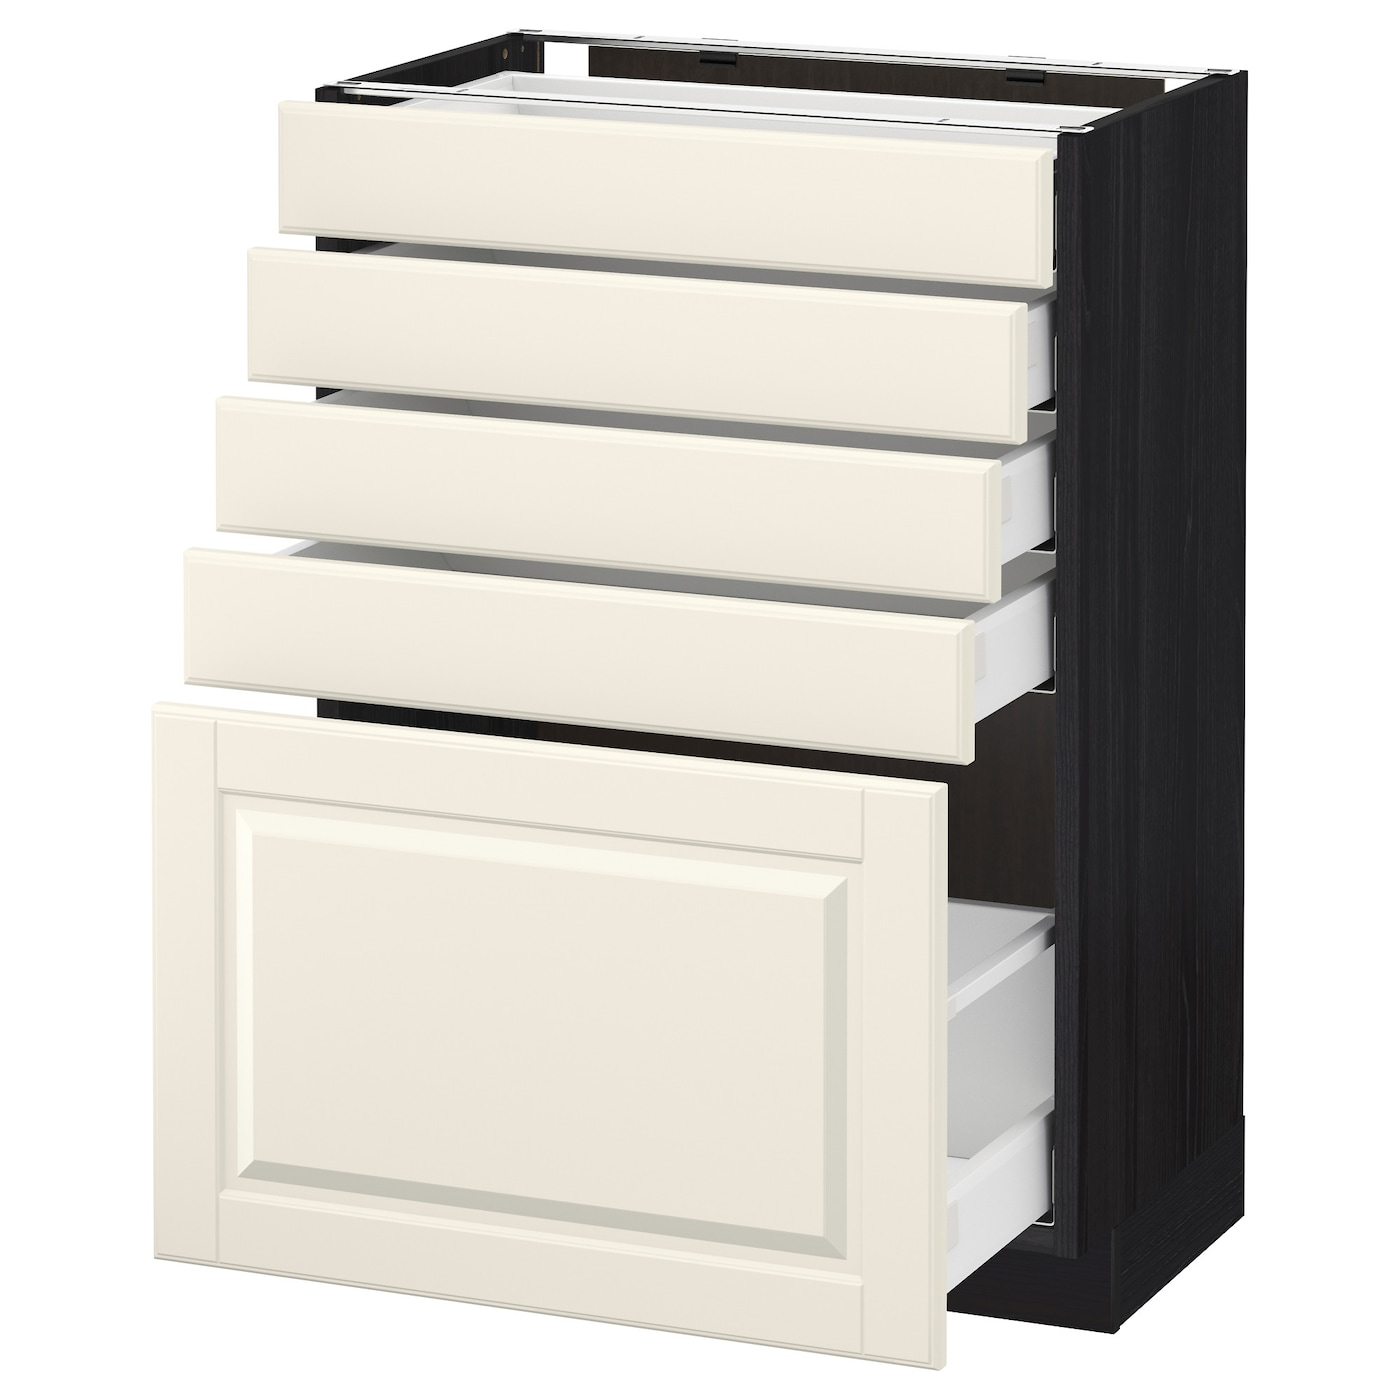 metod maximera base cabinet with 5 drawers black bodbyn off white 60 x 37 cm ikea. Black Bedroom Furniture Sets. Home Design Ideas